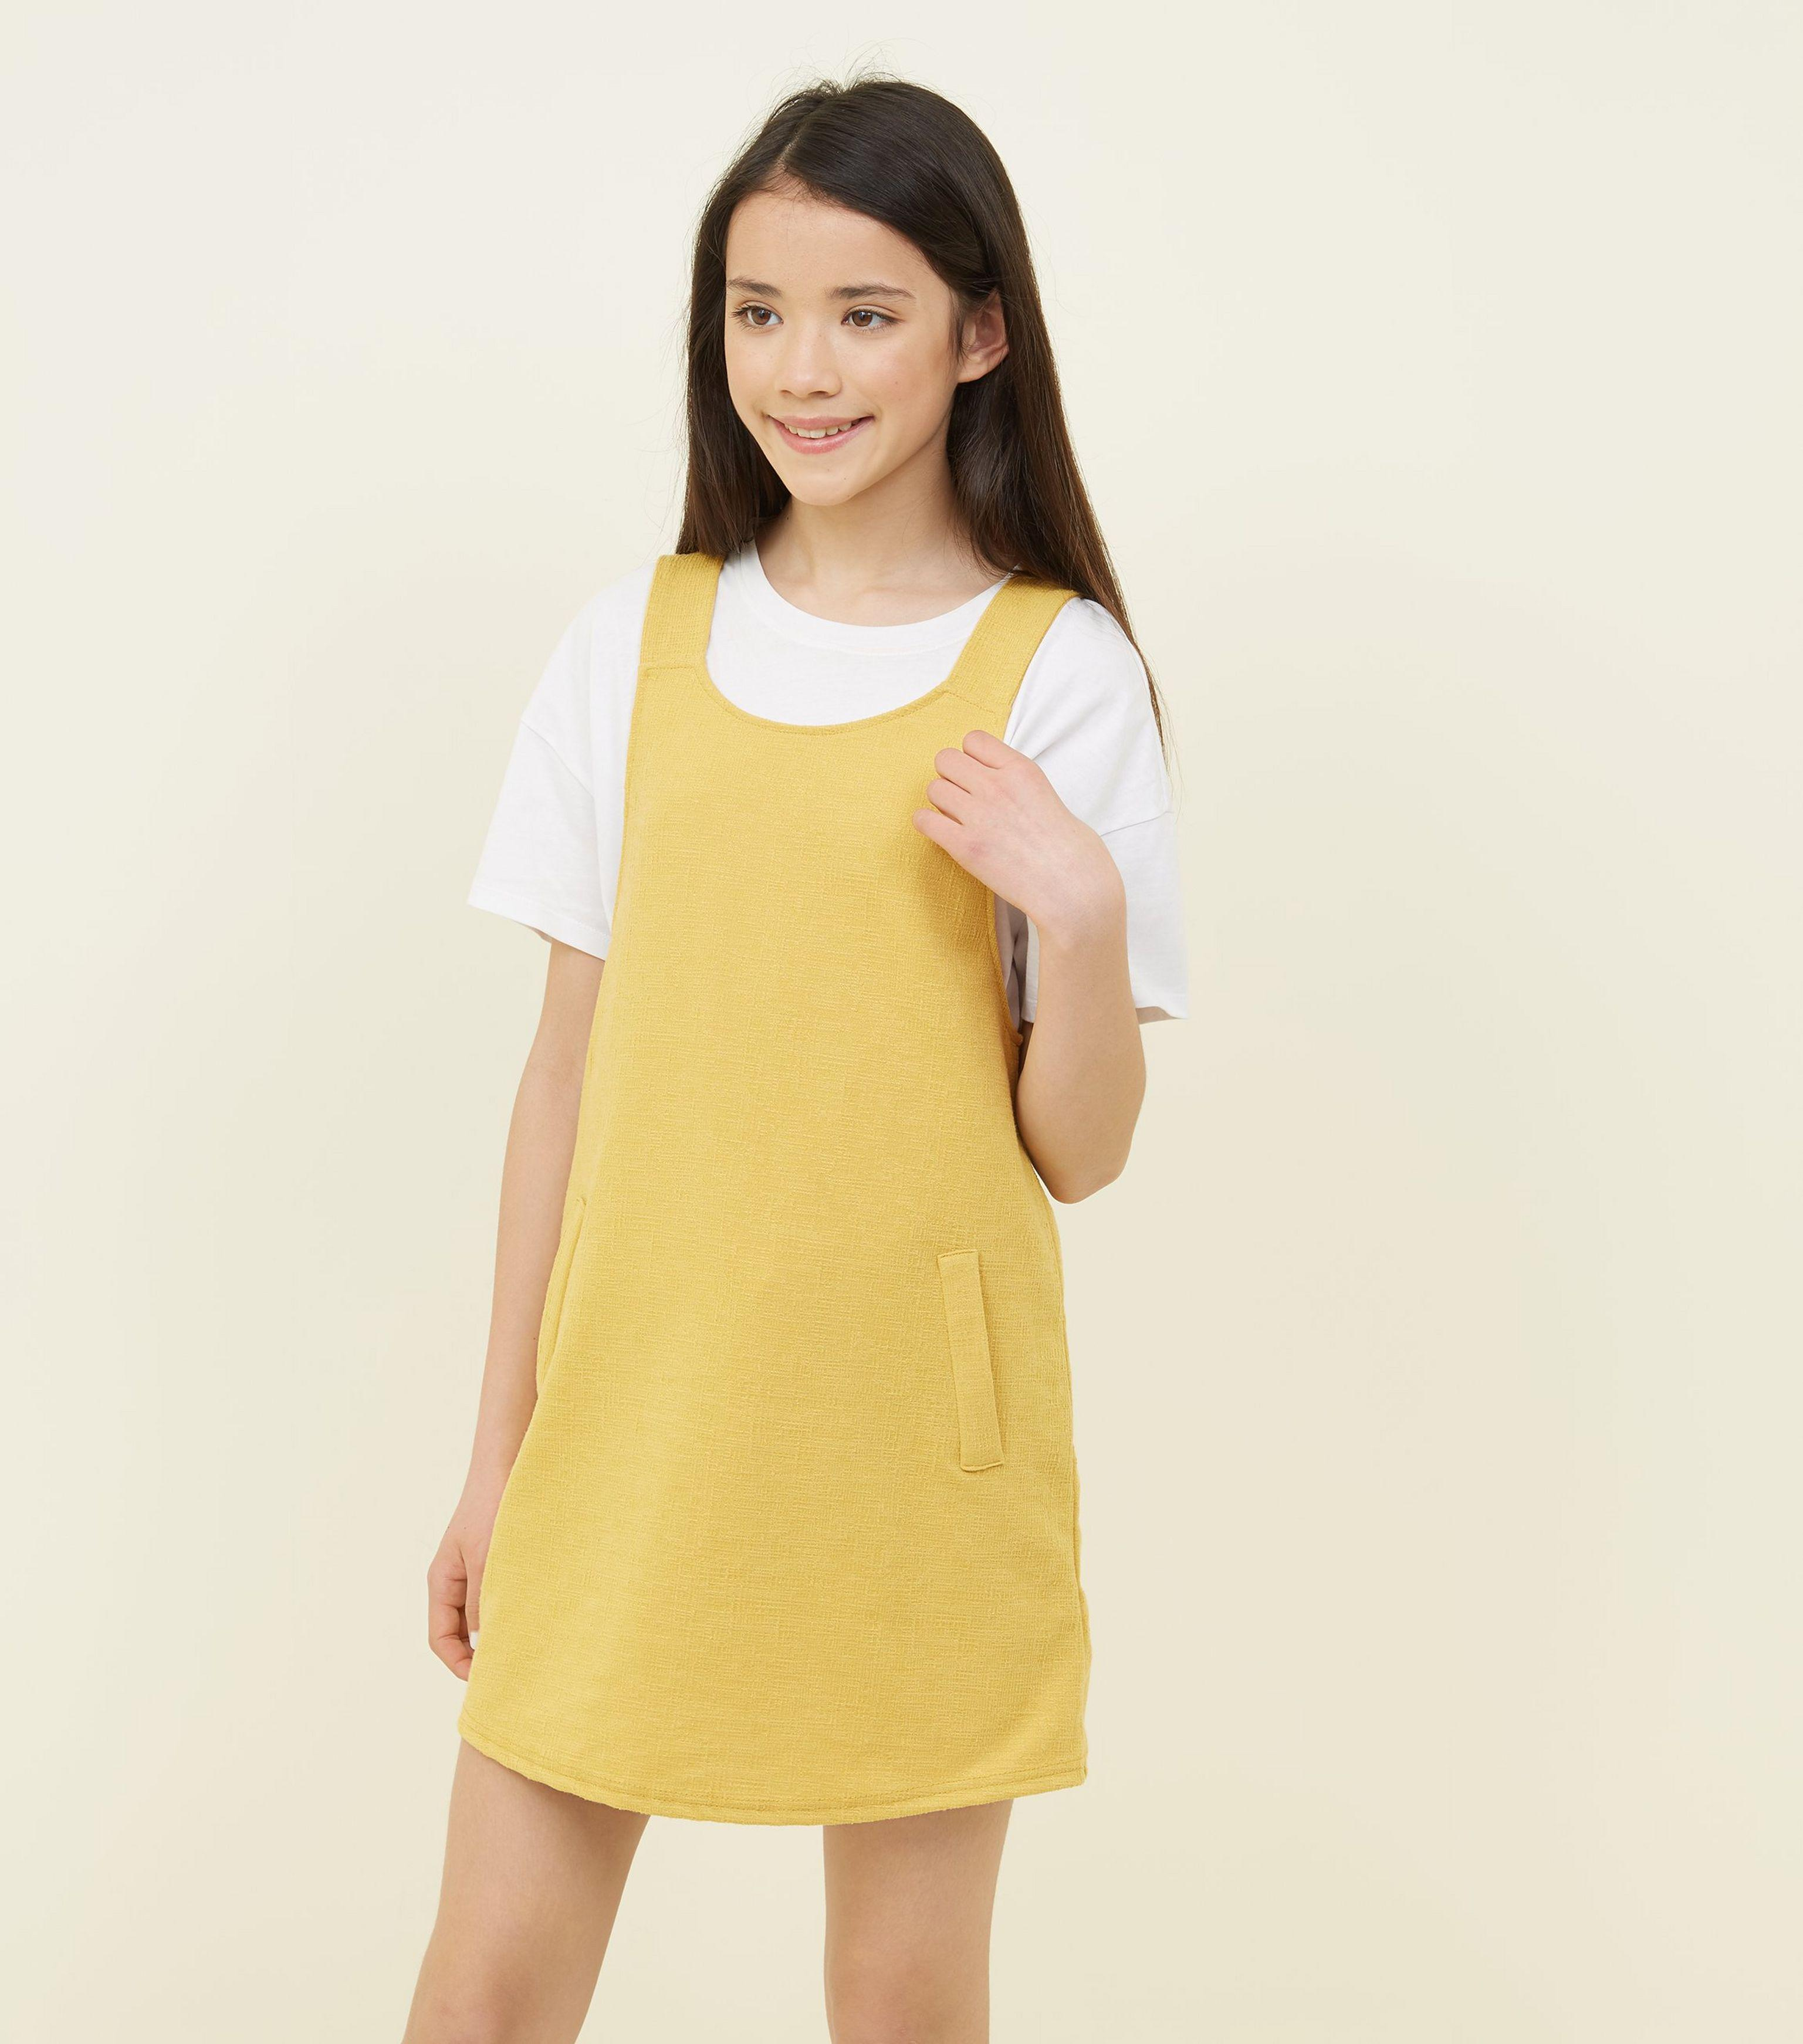 9d5916e90 New Look Girls Mustard Pinafore Dress in Yellow - Lyst